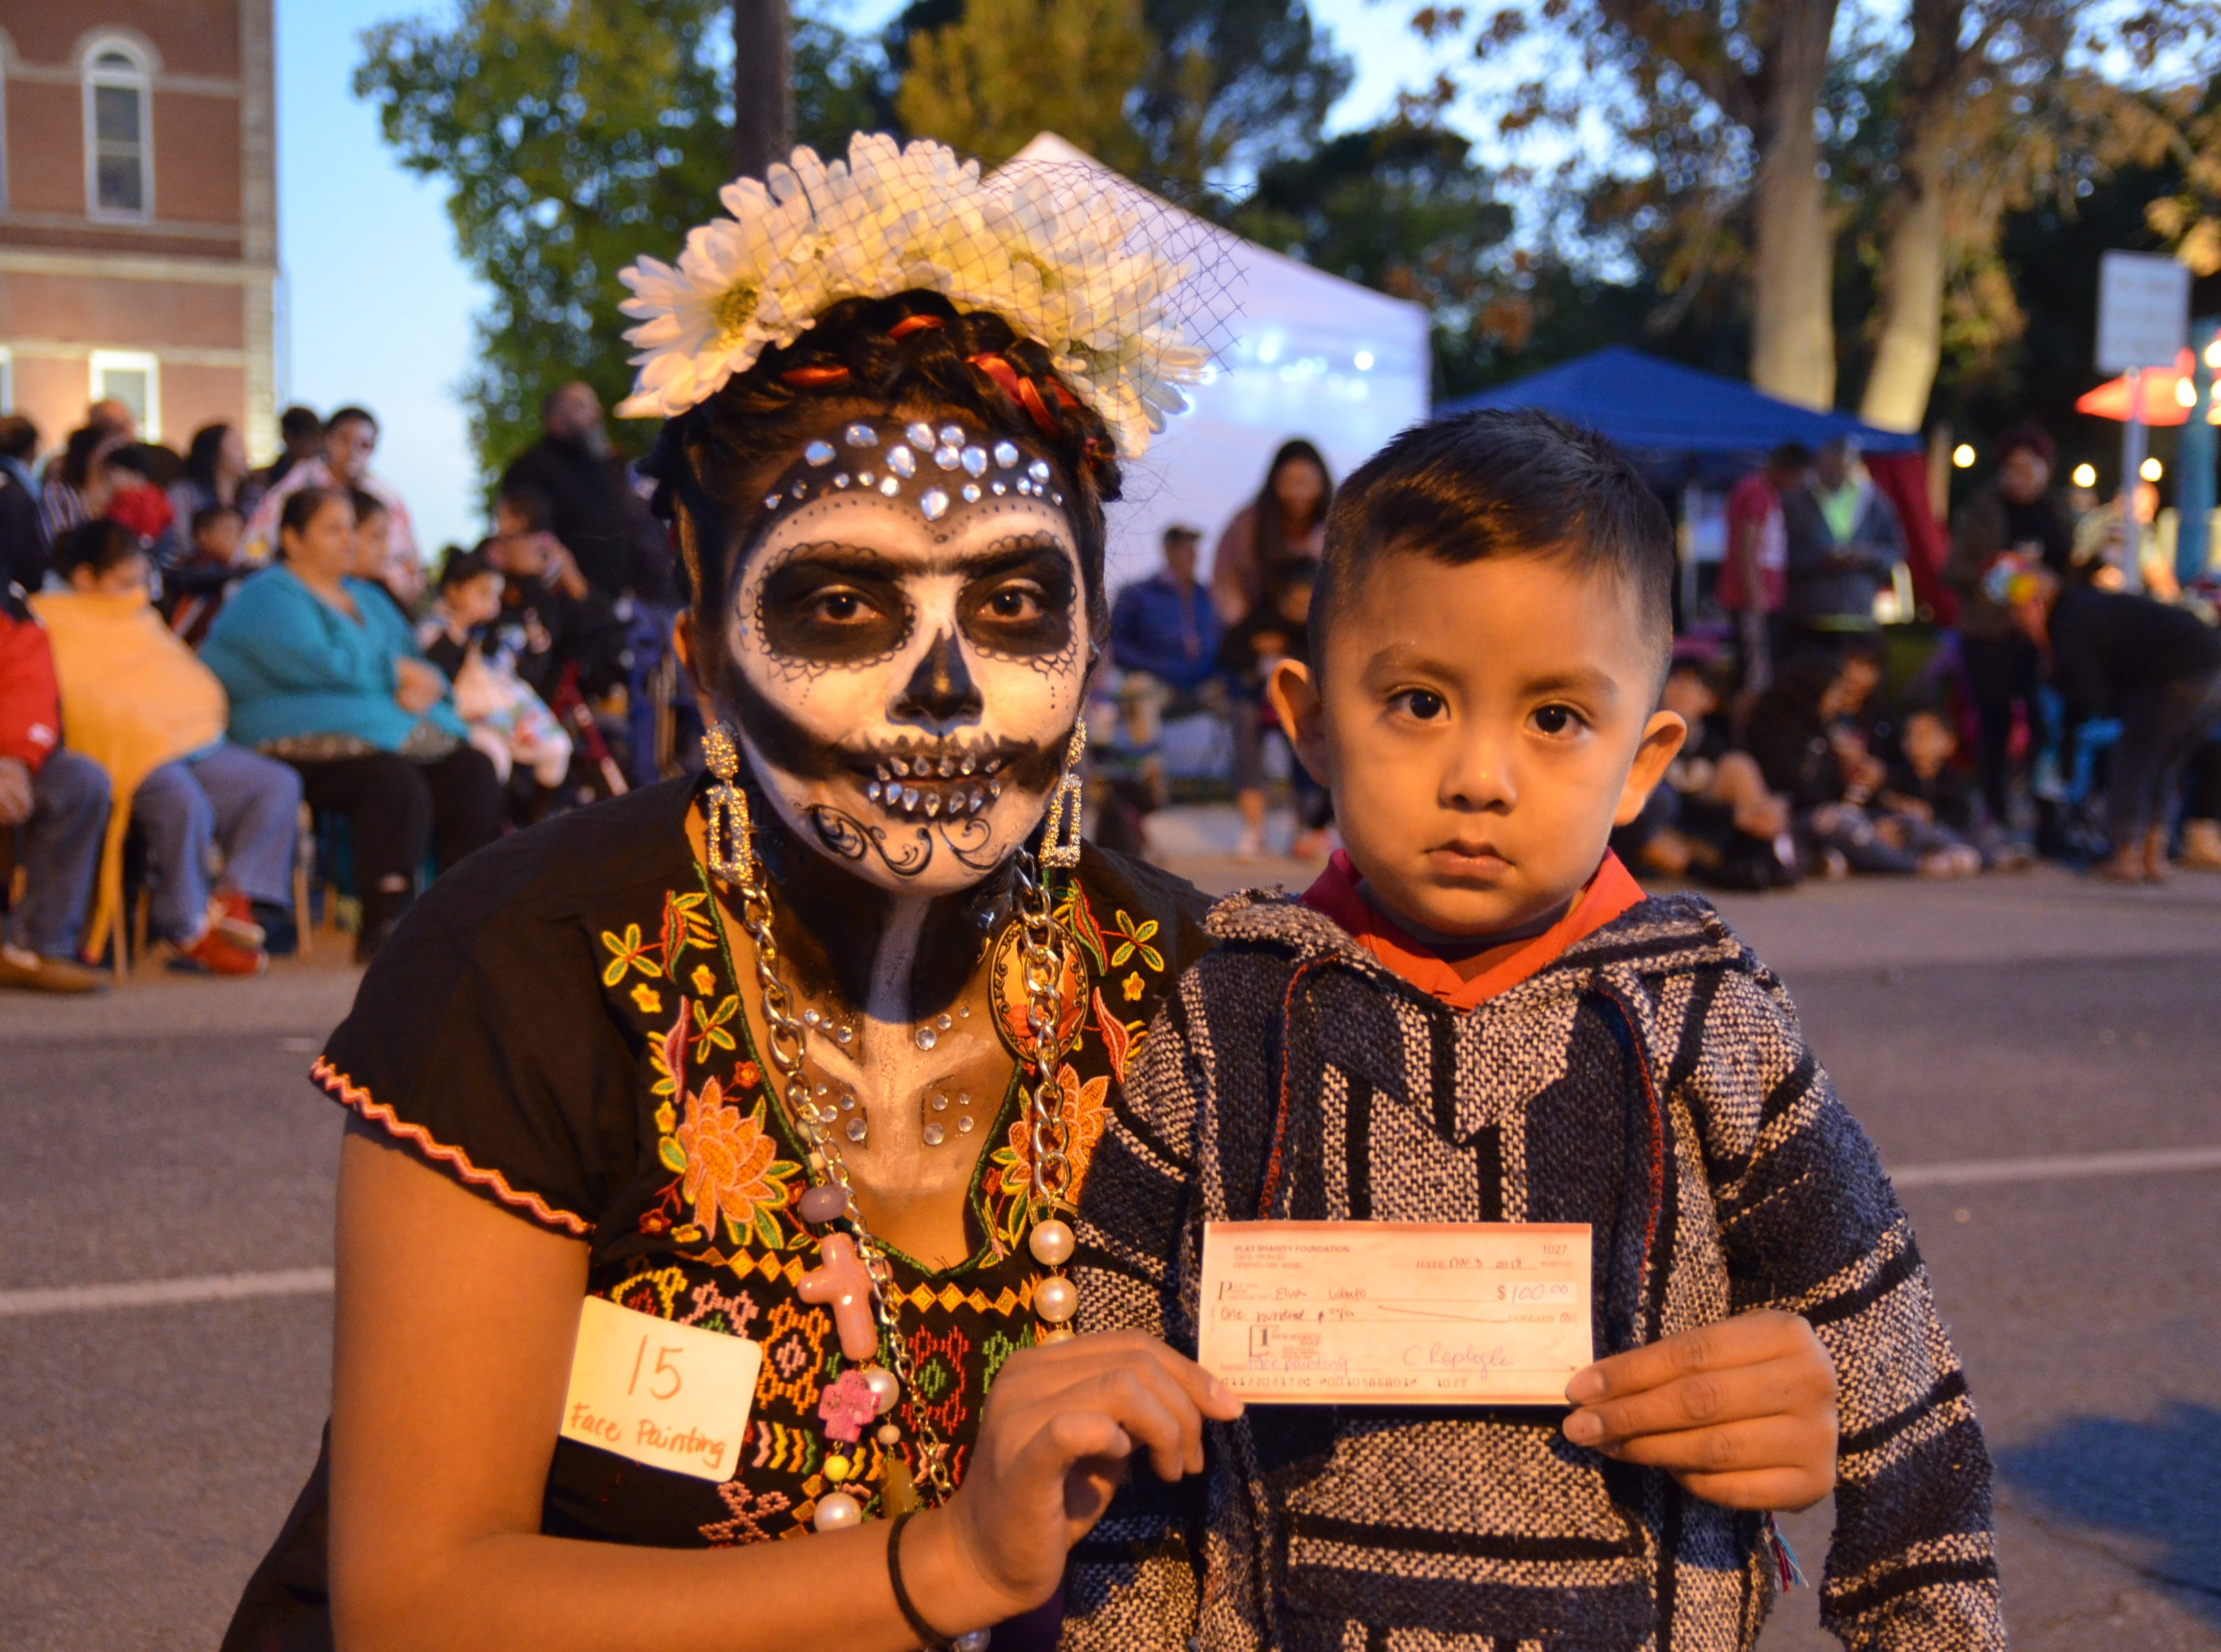 First place winner of face painting contest, Elva Lobato and her son.